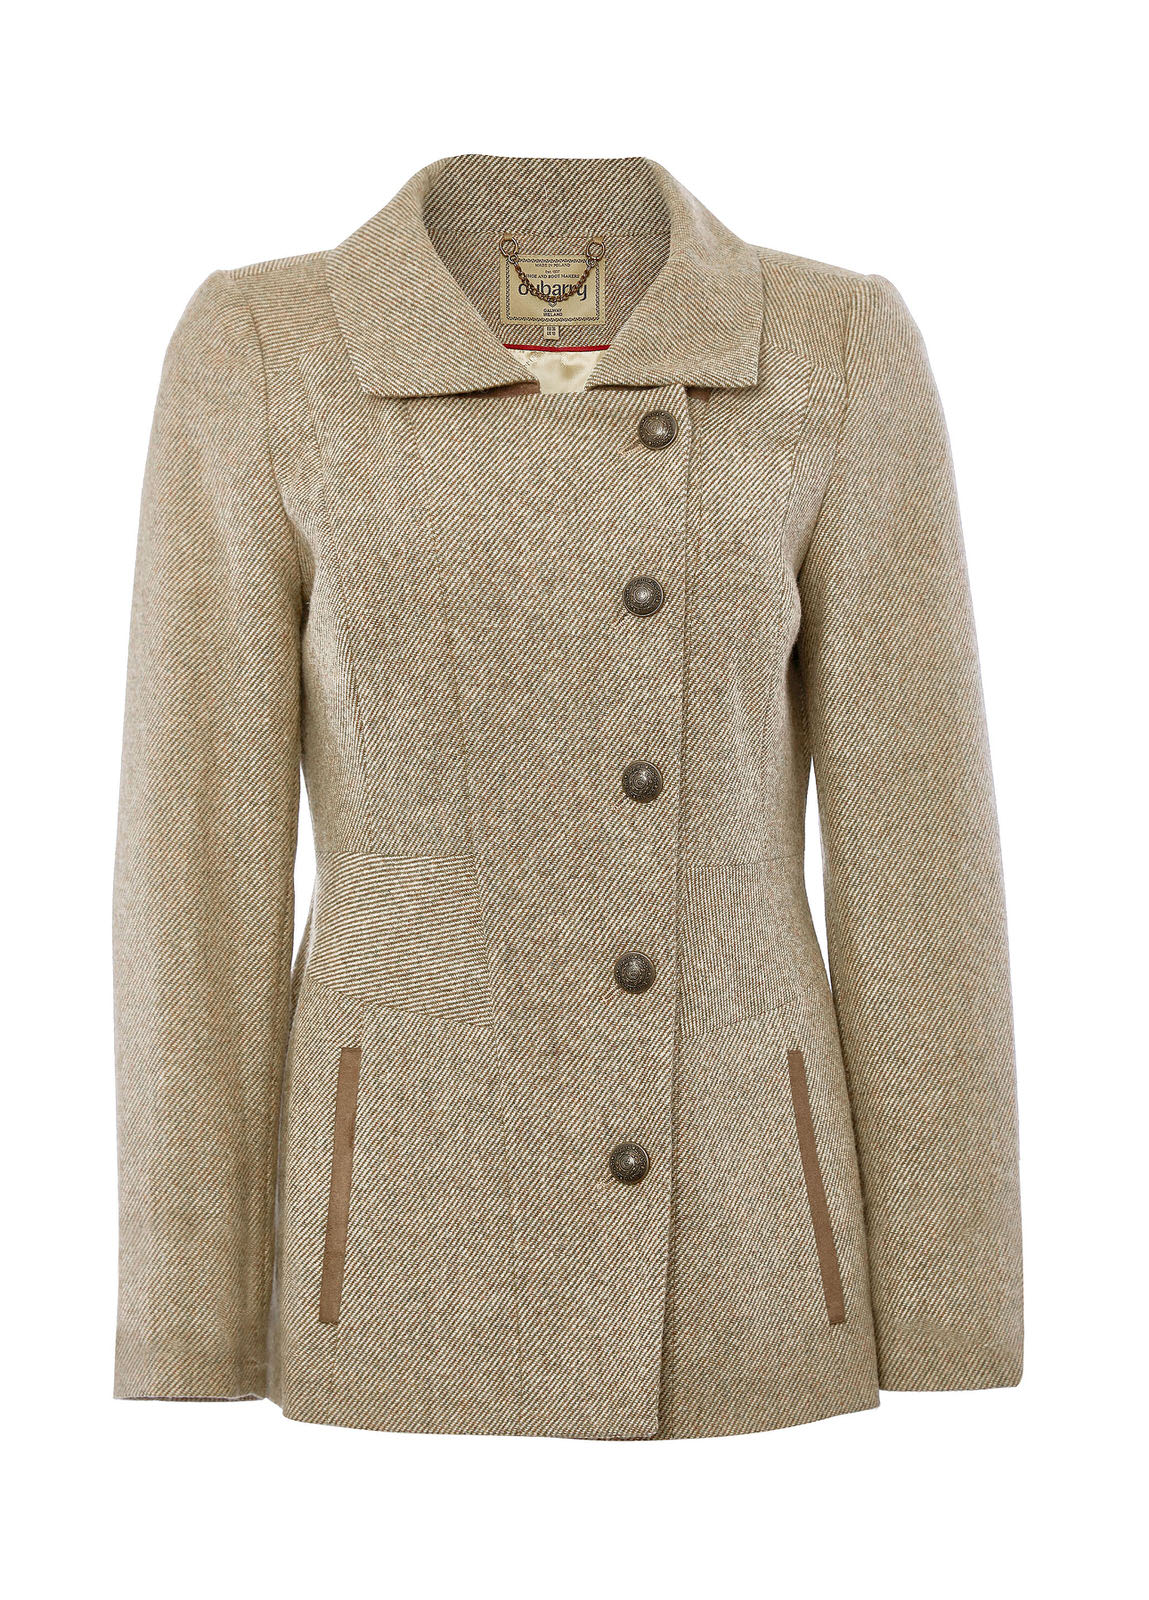 Moorland_Tweed_Jacket_Various_Image_1